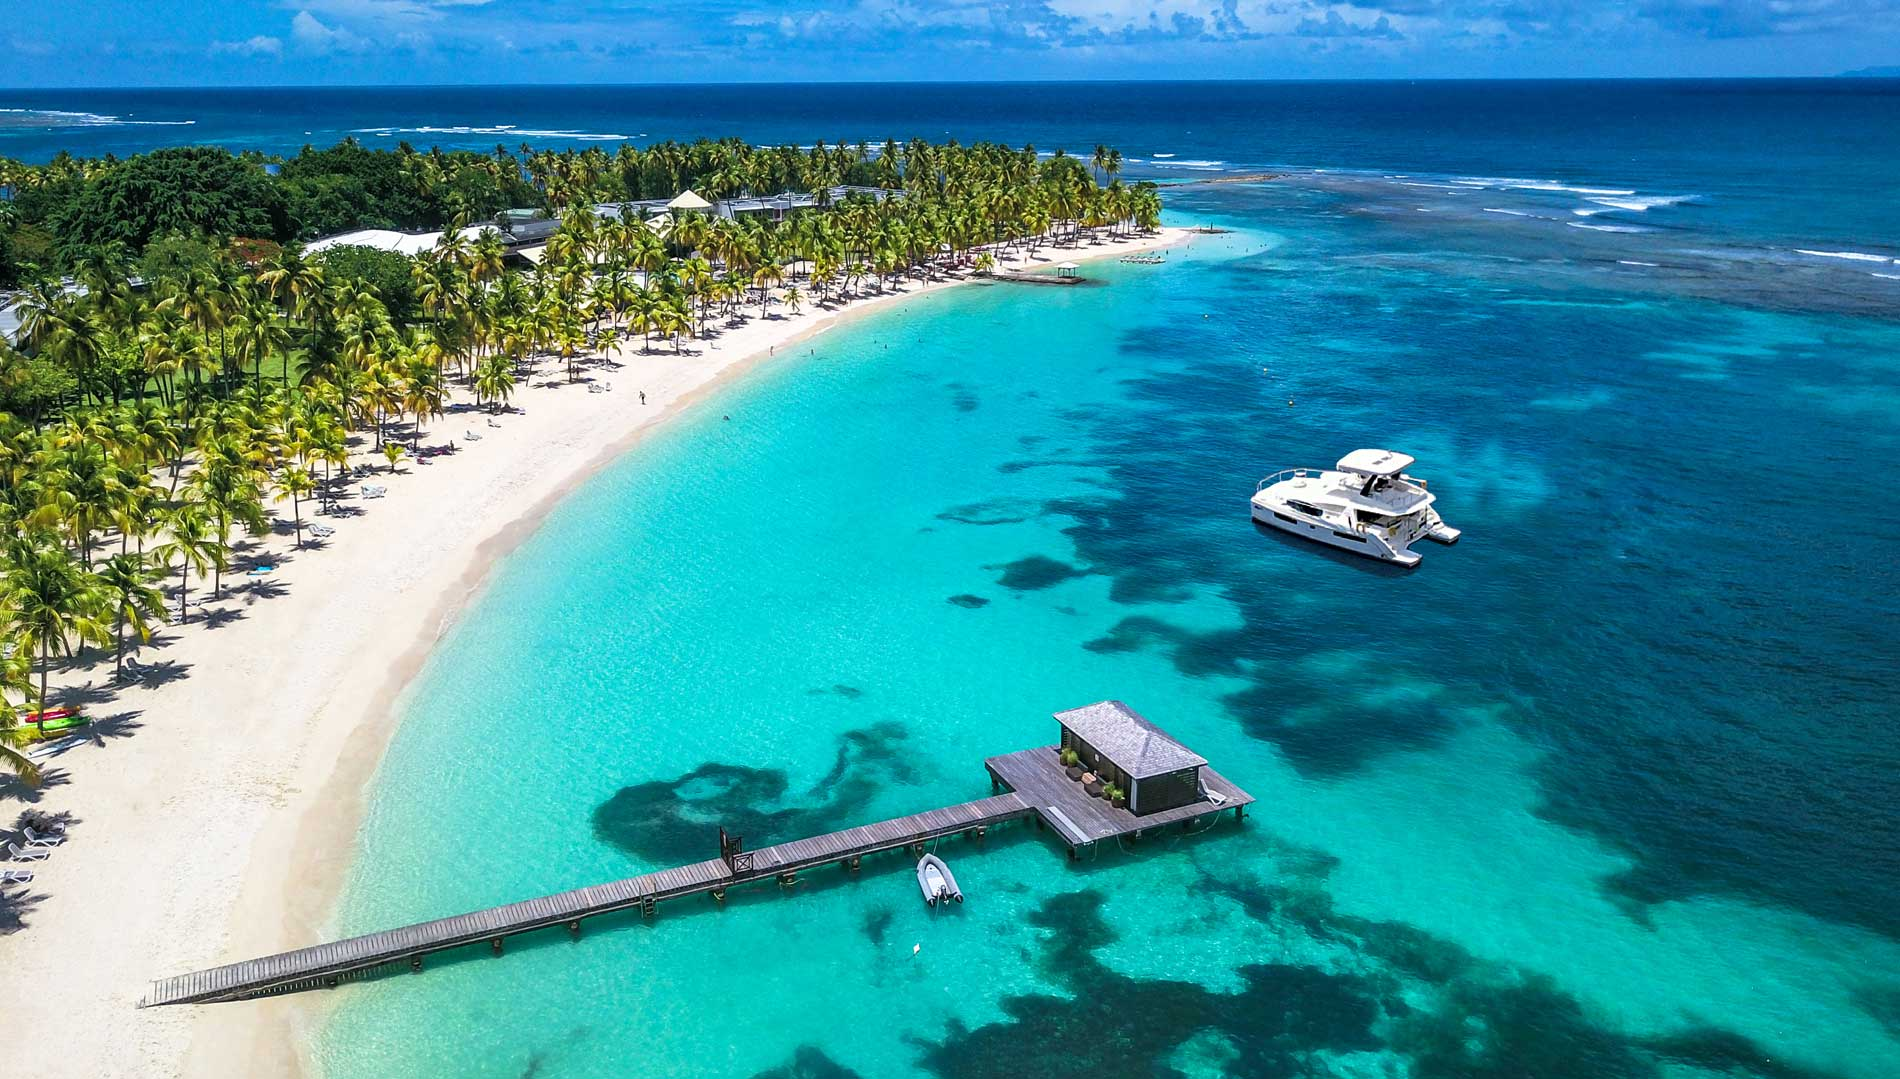 croisieres-privees-guadeloupe